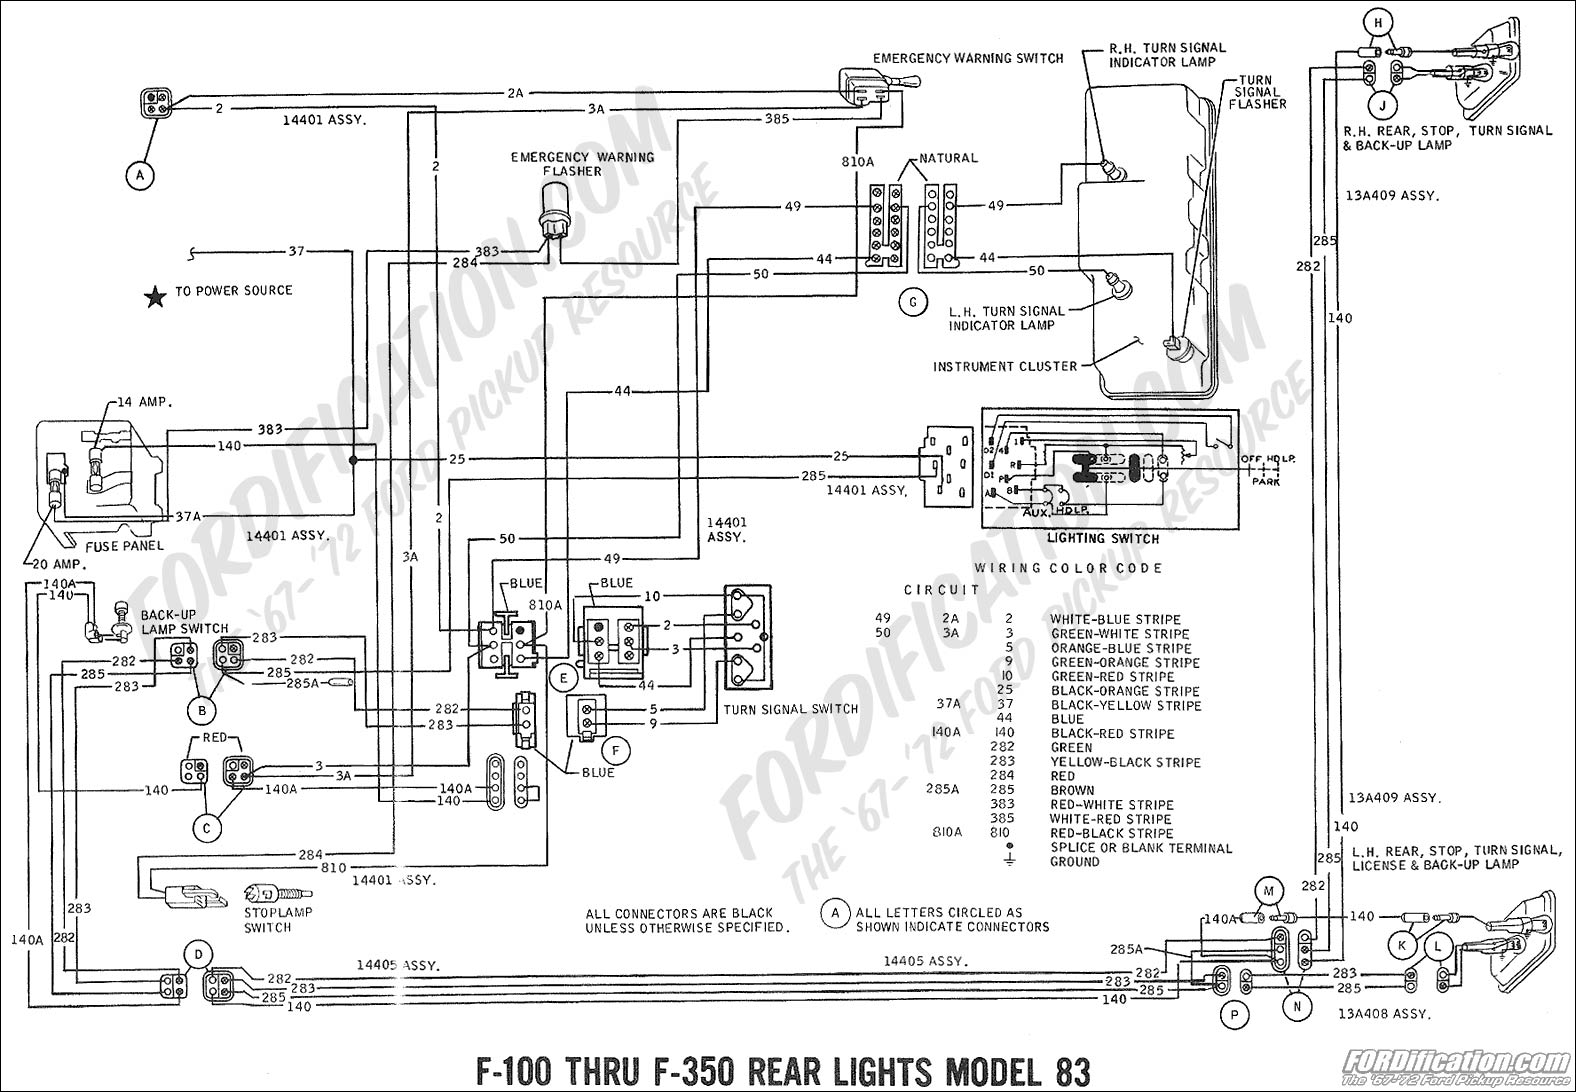 [SCHEMATICS_4CA]  Wiring Diagram 1984 Ford E 150 Van | Wiring Diagram | 1984 Ford Car Wiring Schematics |  | Wiring Diagram - Autoscout24